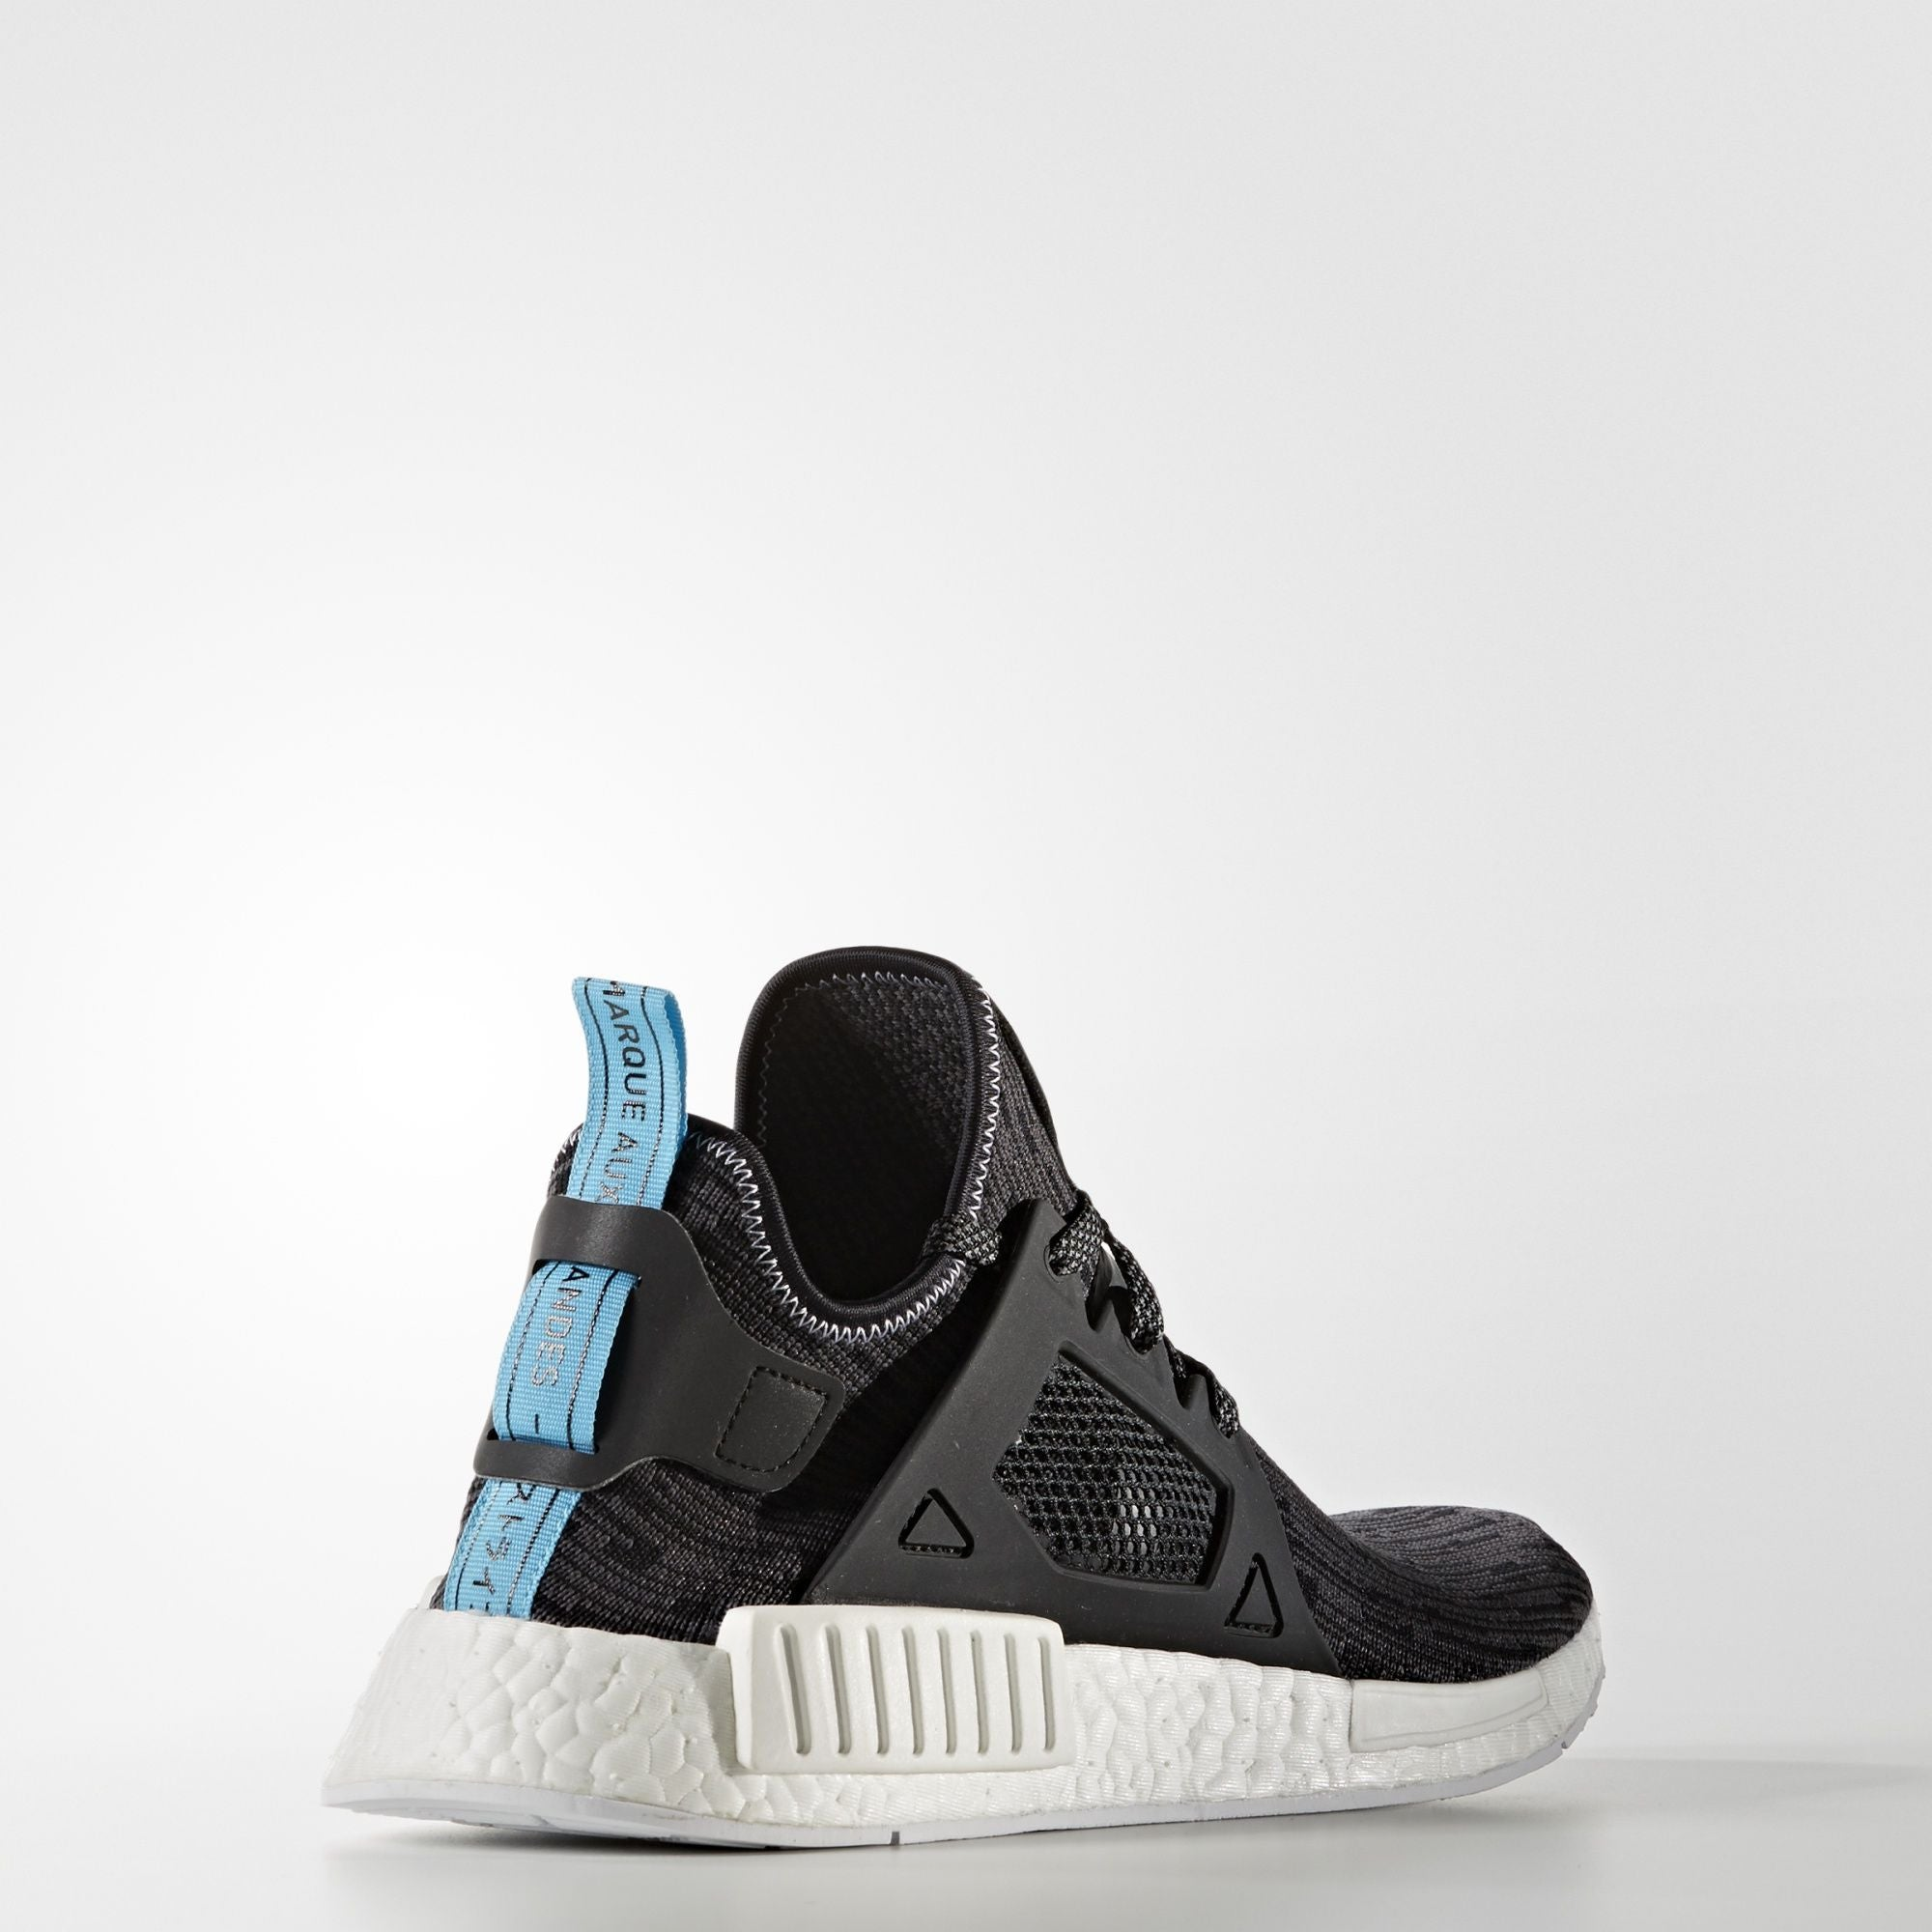 adidas NMD XR1 PK Black Bright Blue